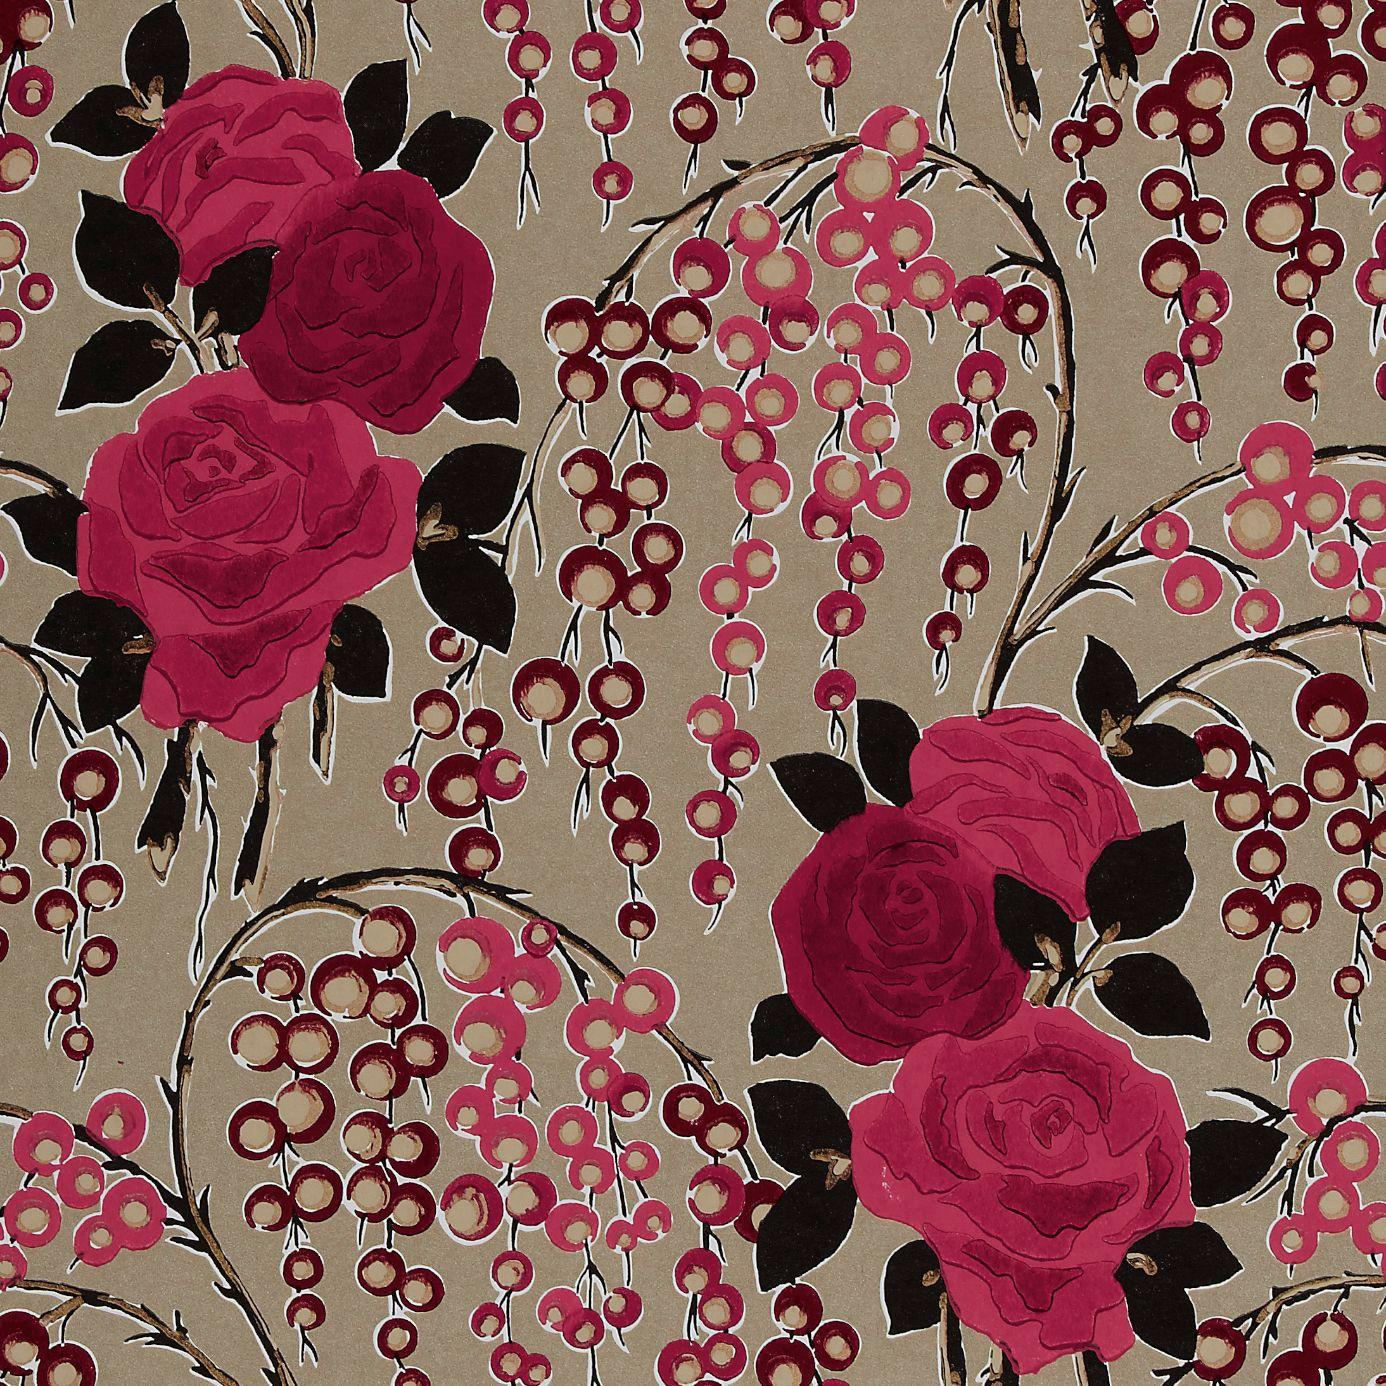 Home Wallpapers Harlequin Boutique Wallpapers Iola Rose Wallpaper 1386x1386